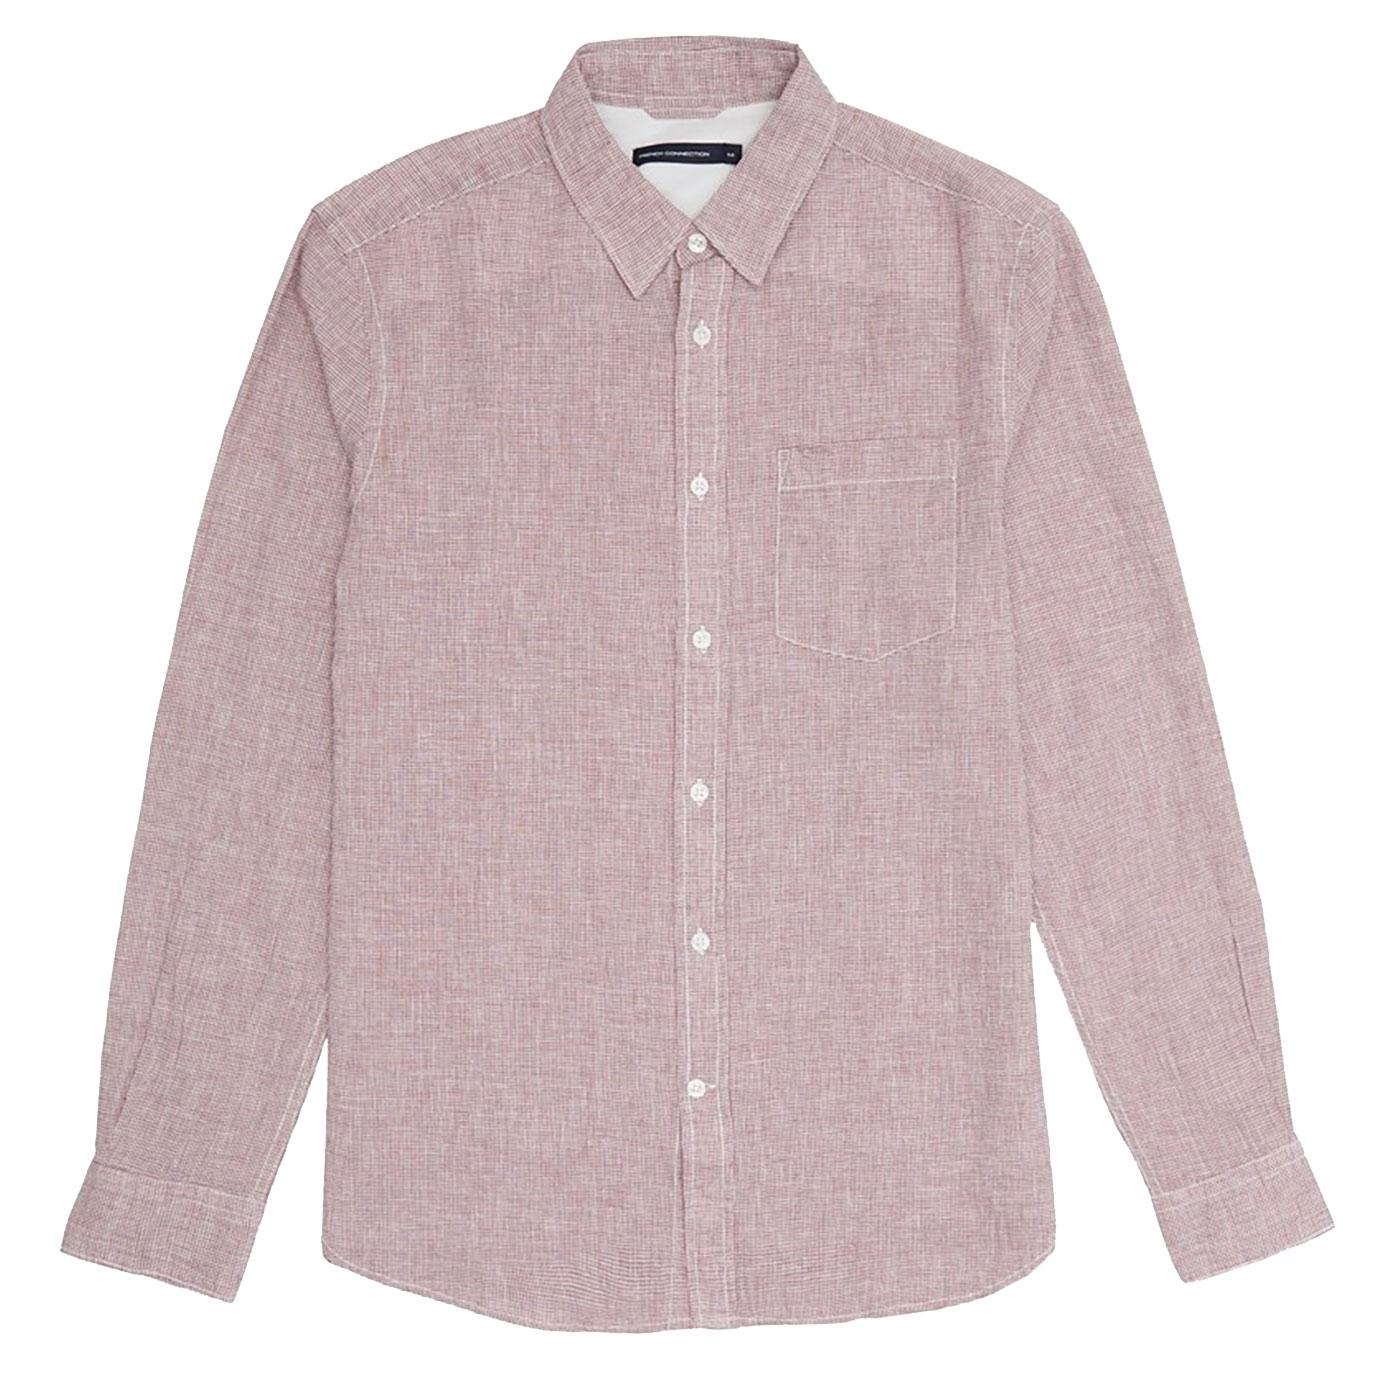 FRENCH CONNECTION Mens Houndstooth Check Shirt